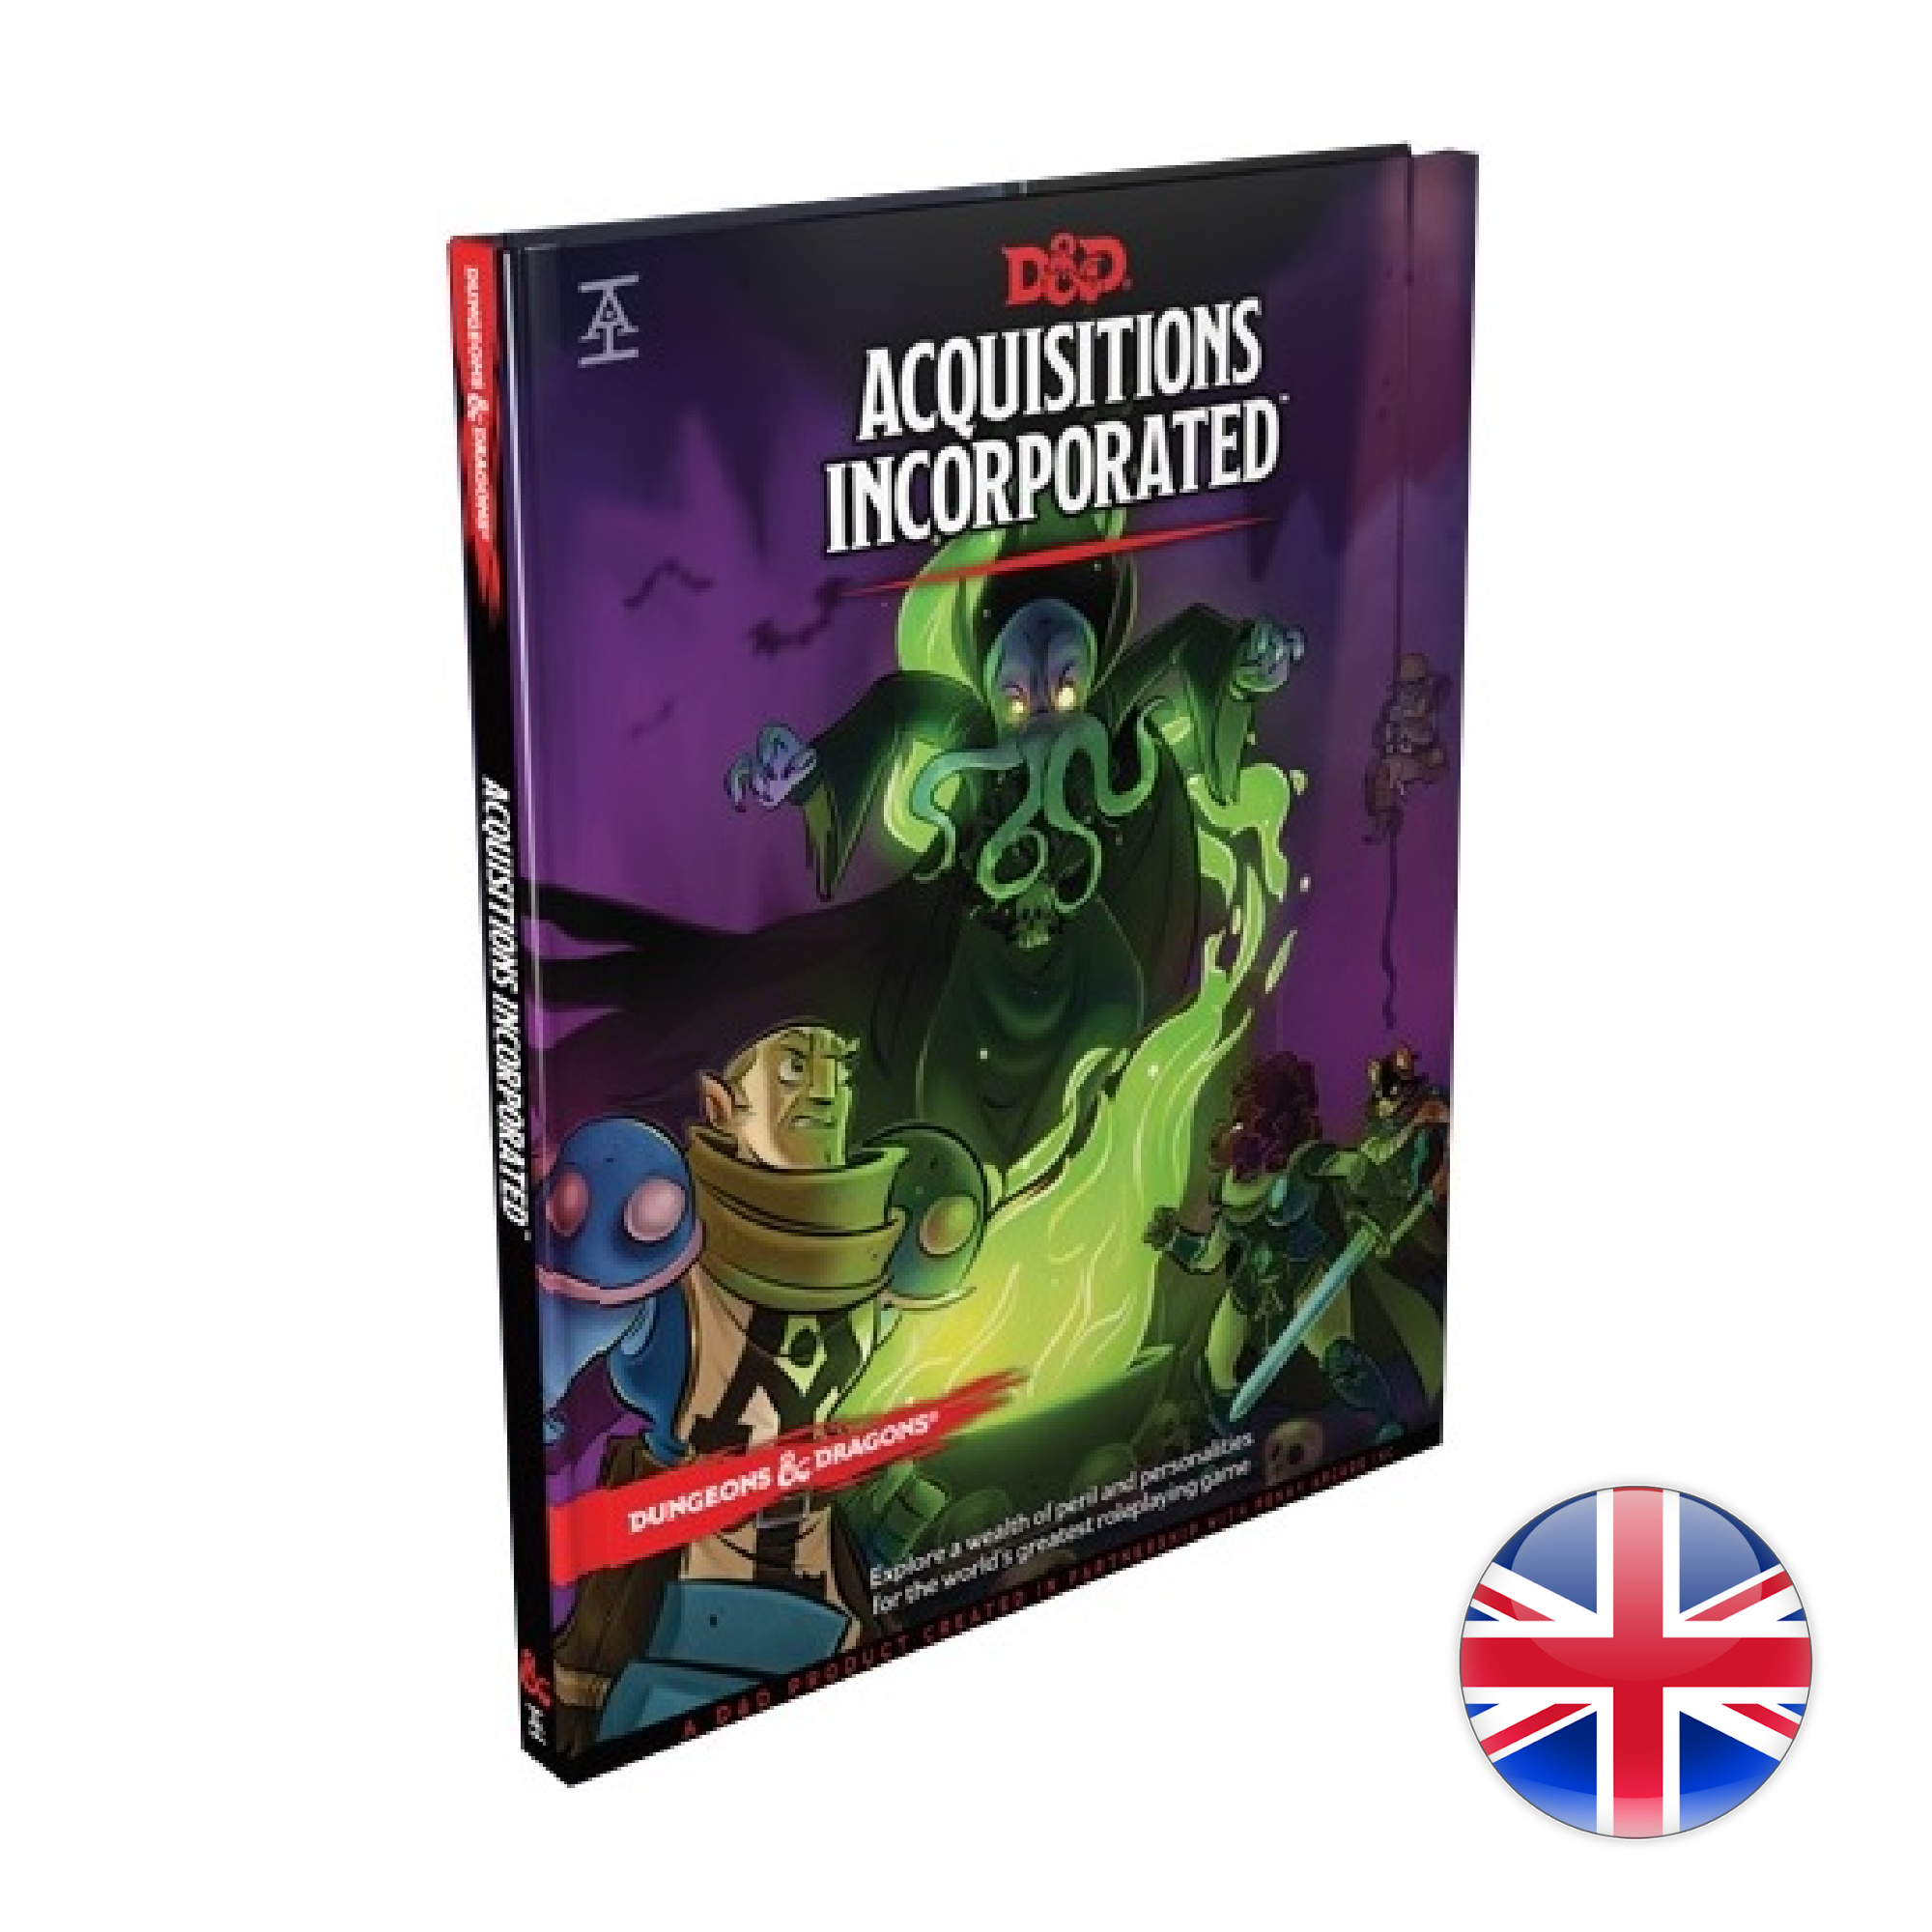 Wizards of the Coast D&D Dungeons & Dragons: Acquisitions Incorporated